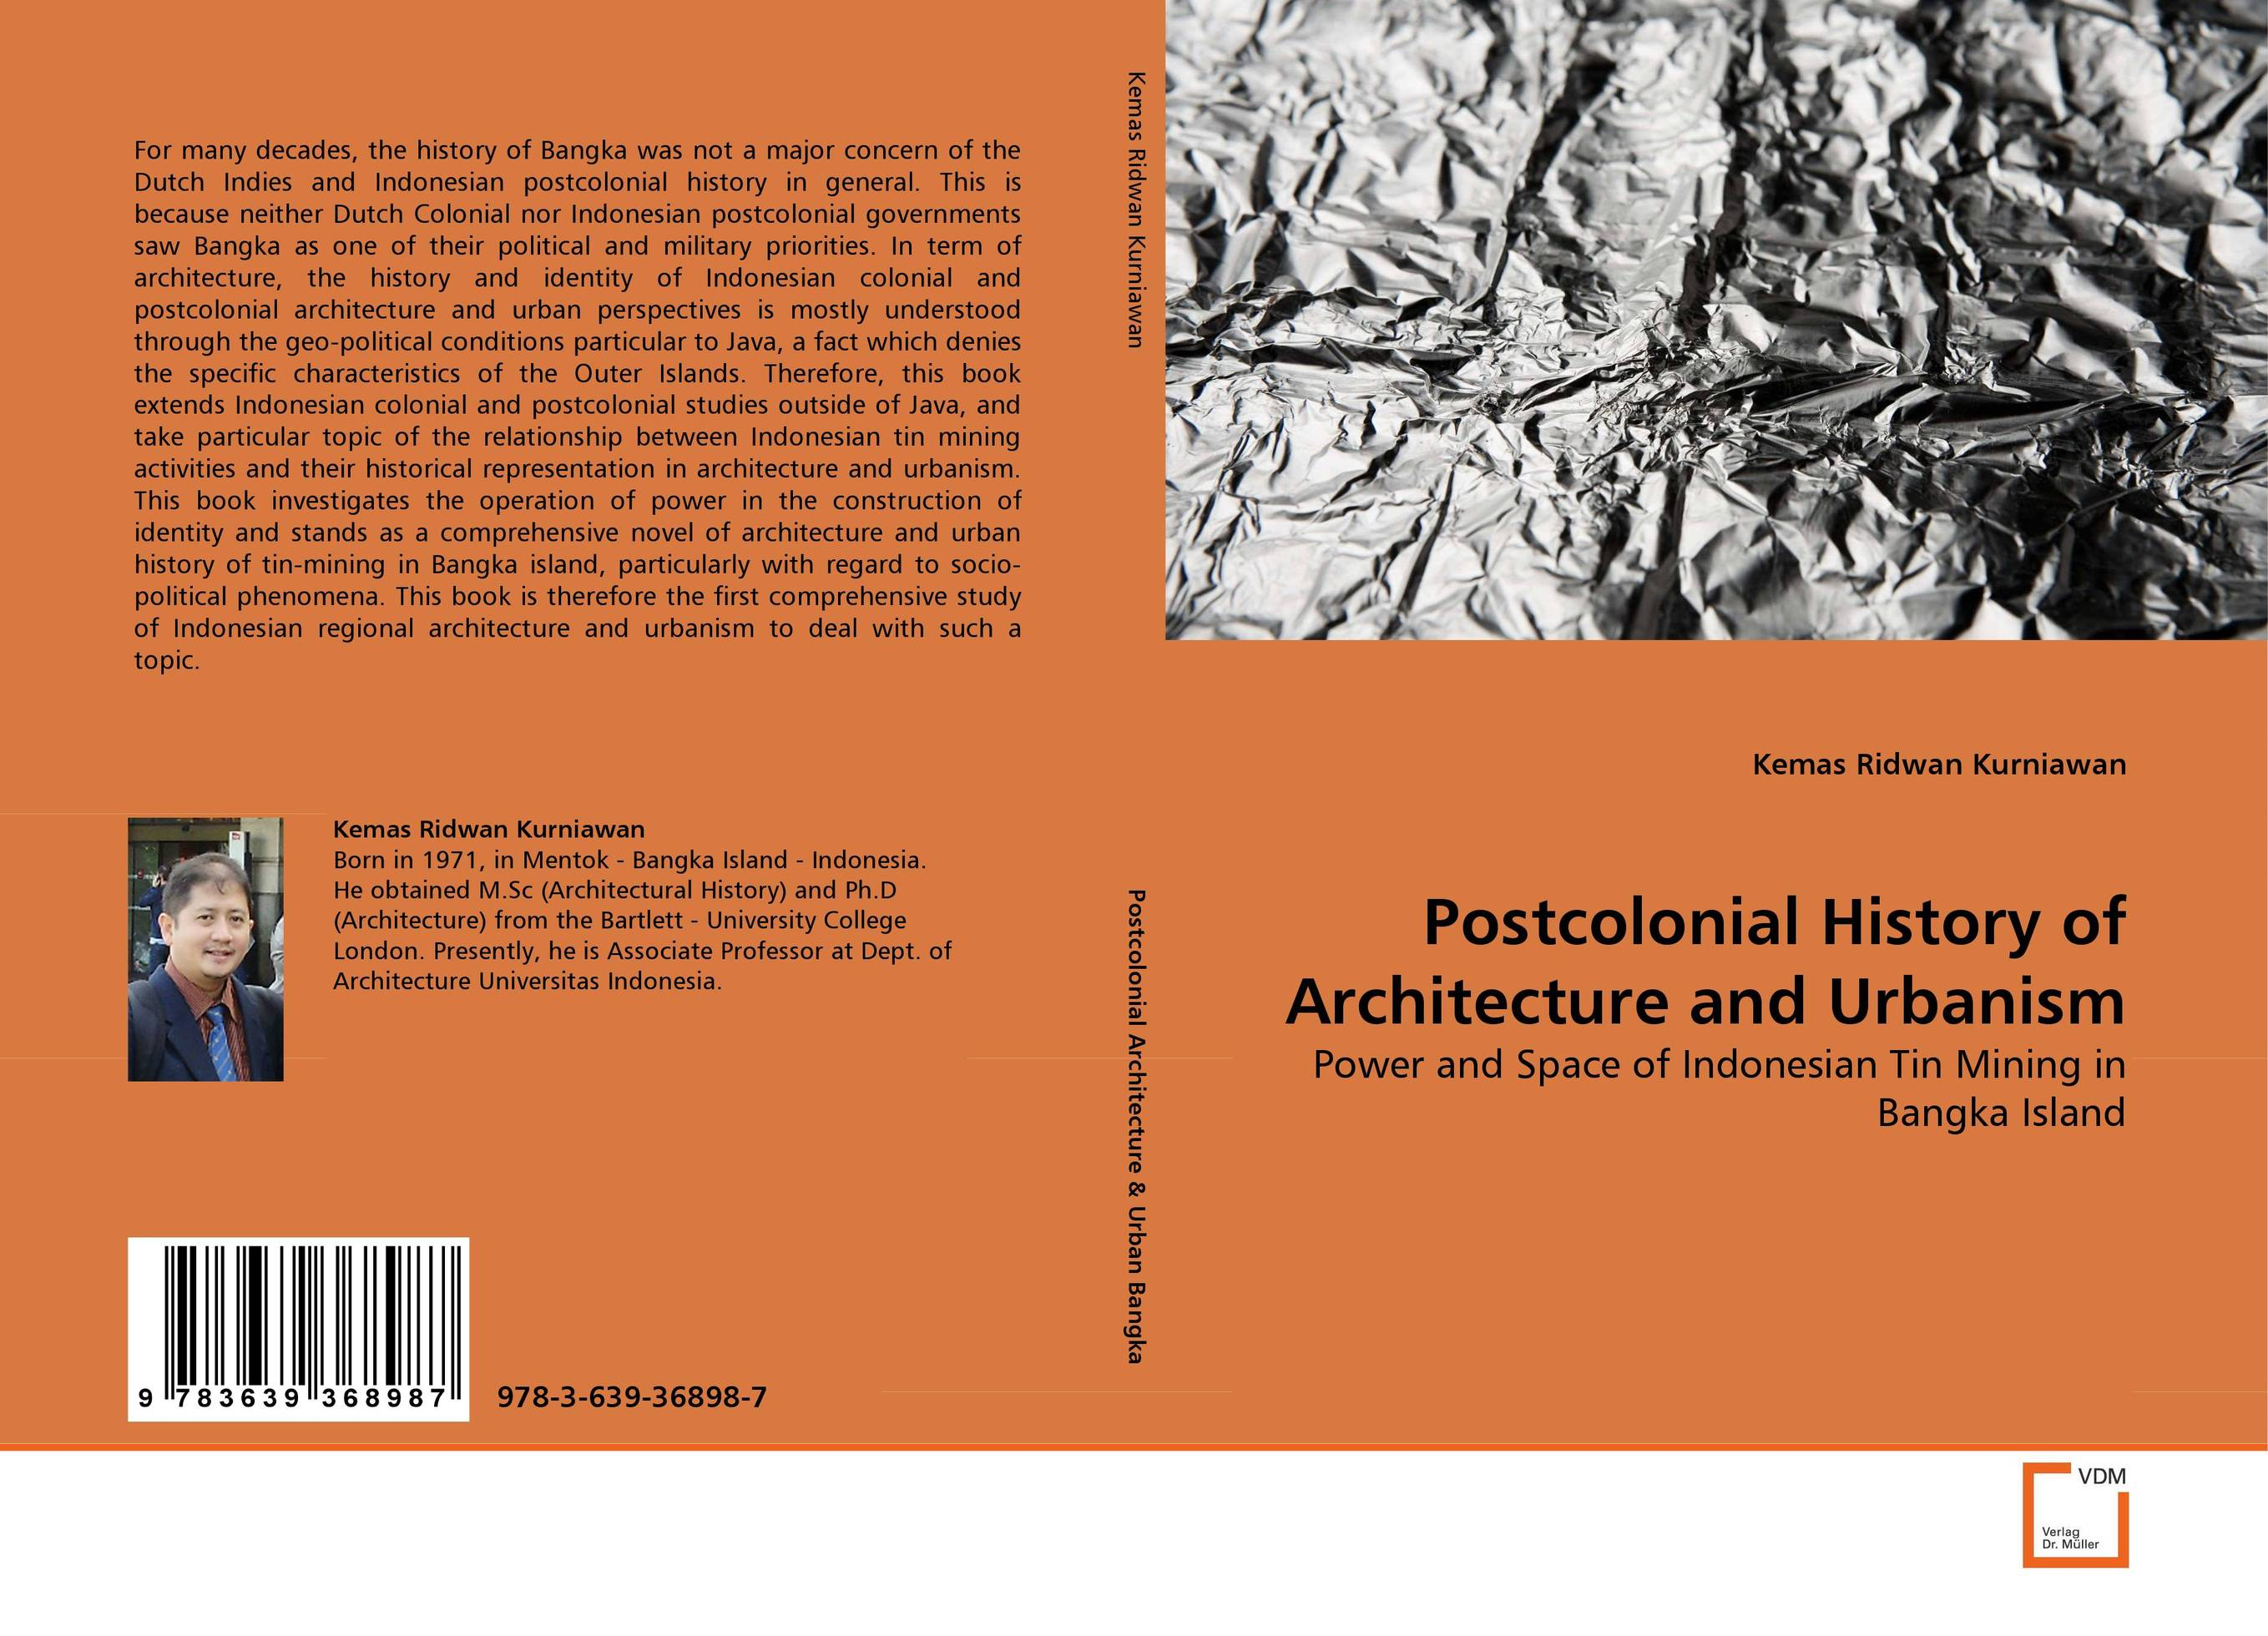 Postcolonial History of Architecture and Urbanism